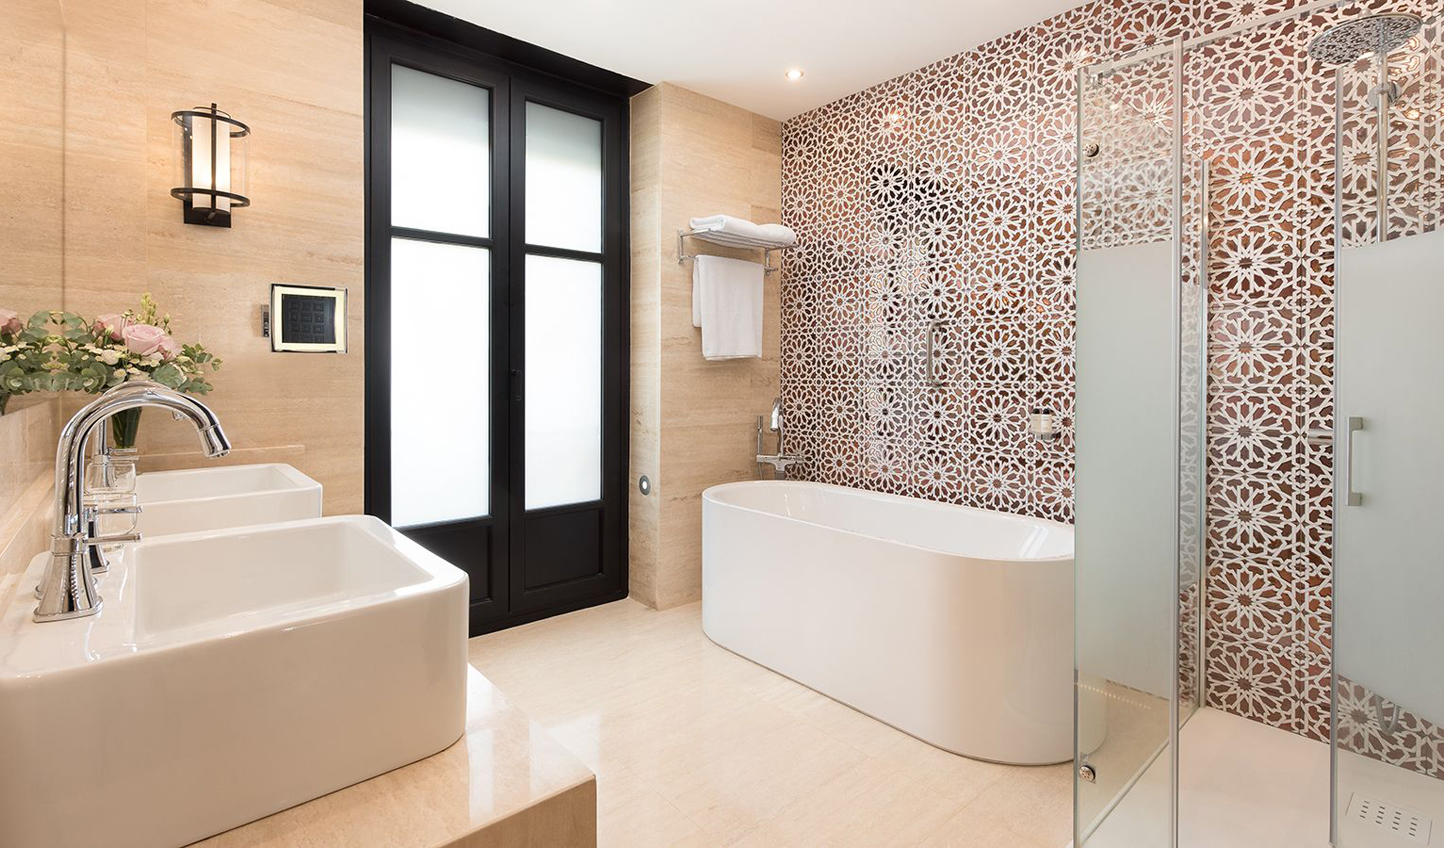 Intricate tiling runs throughout the hotel and extends into the bathrooms